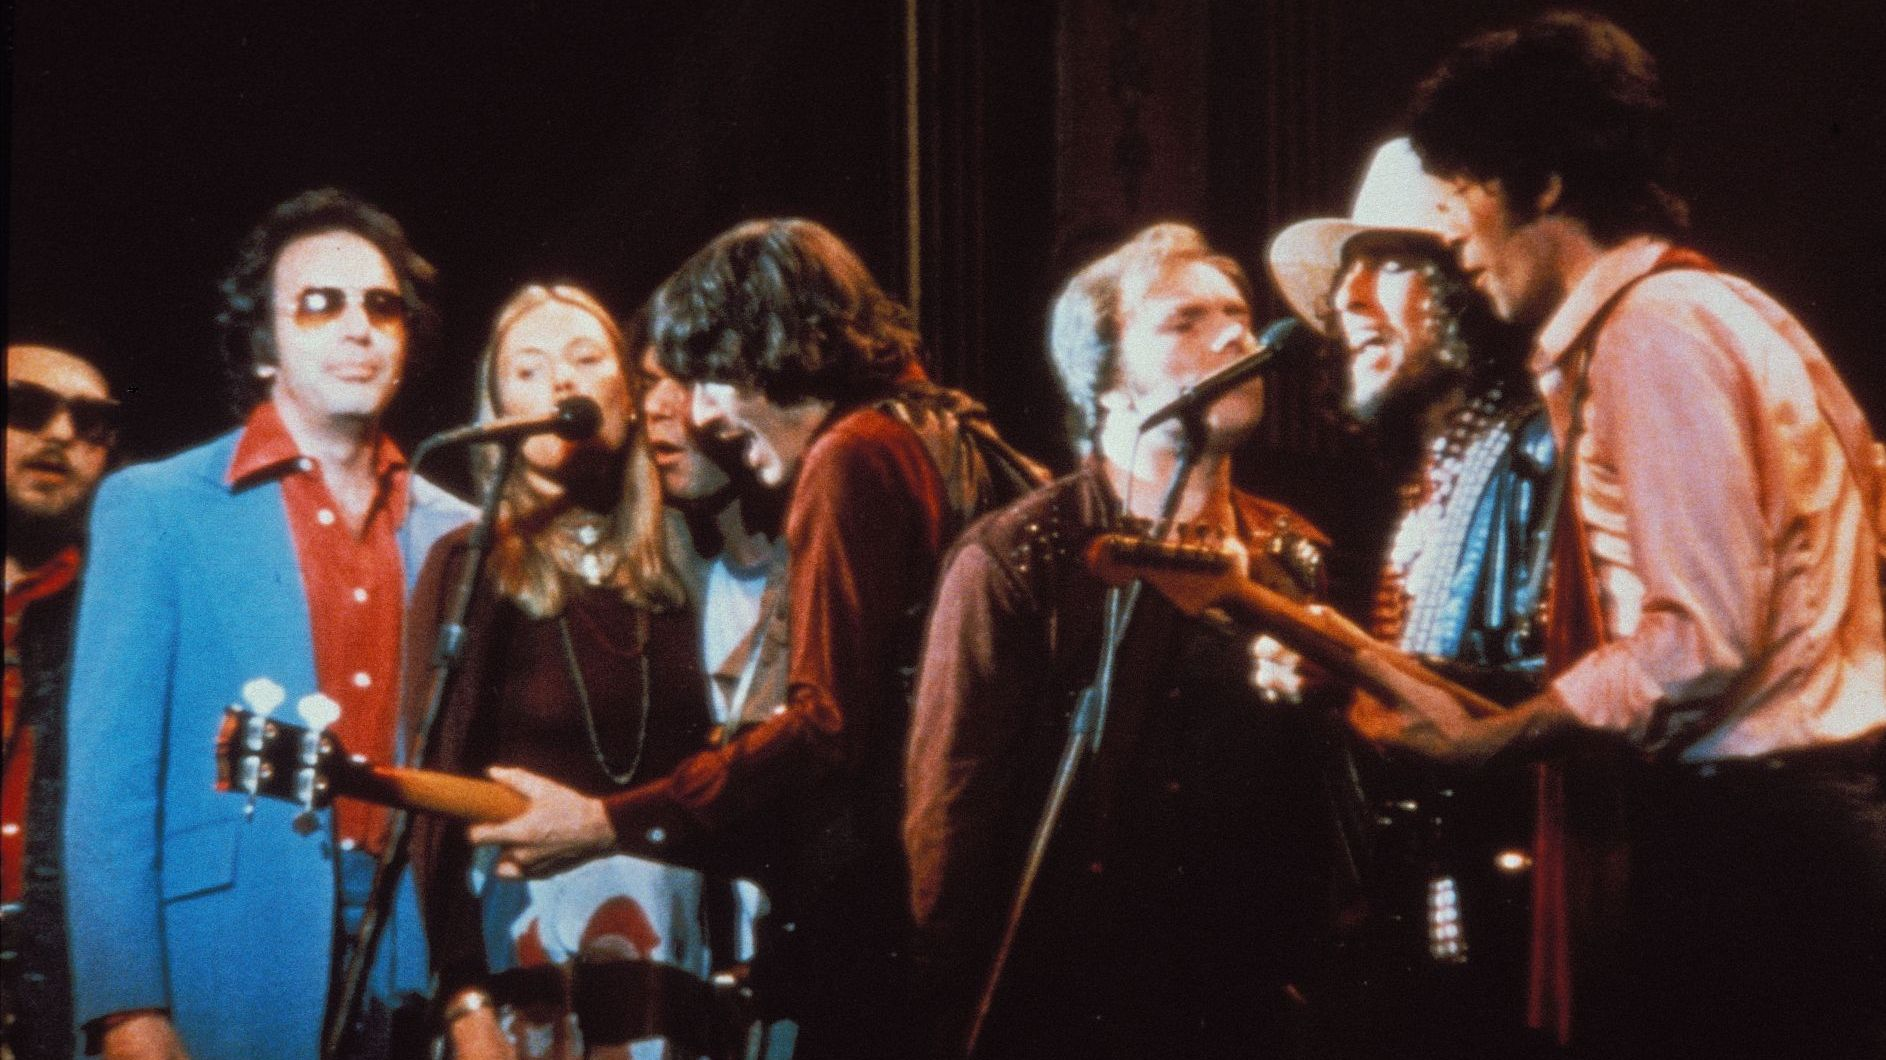 The Band in the Last Waltz